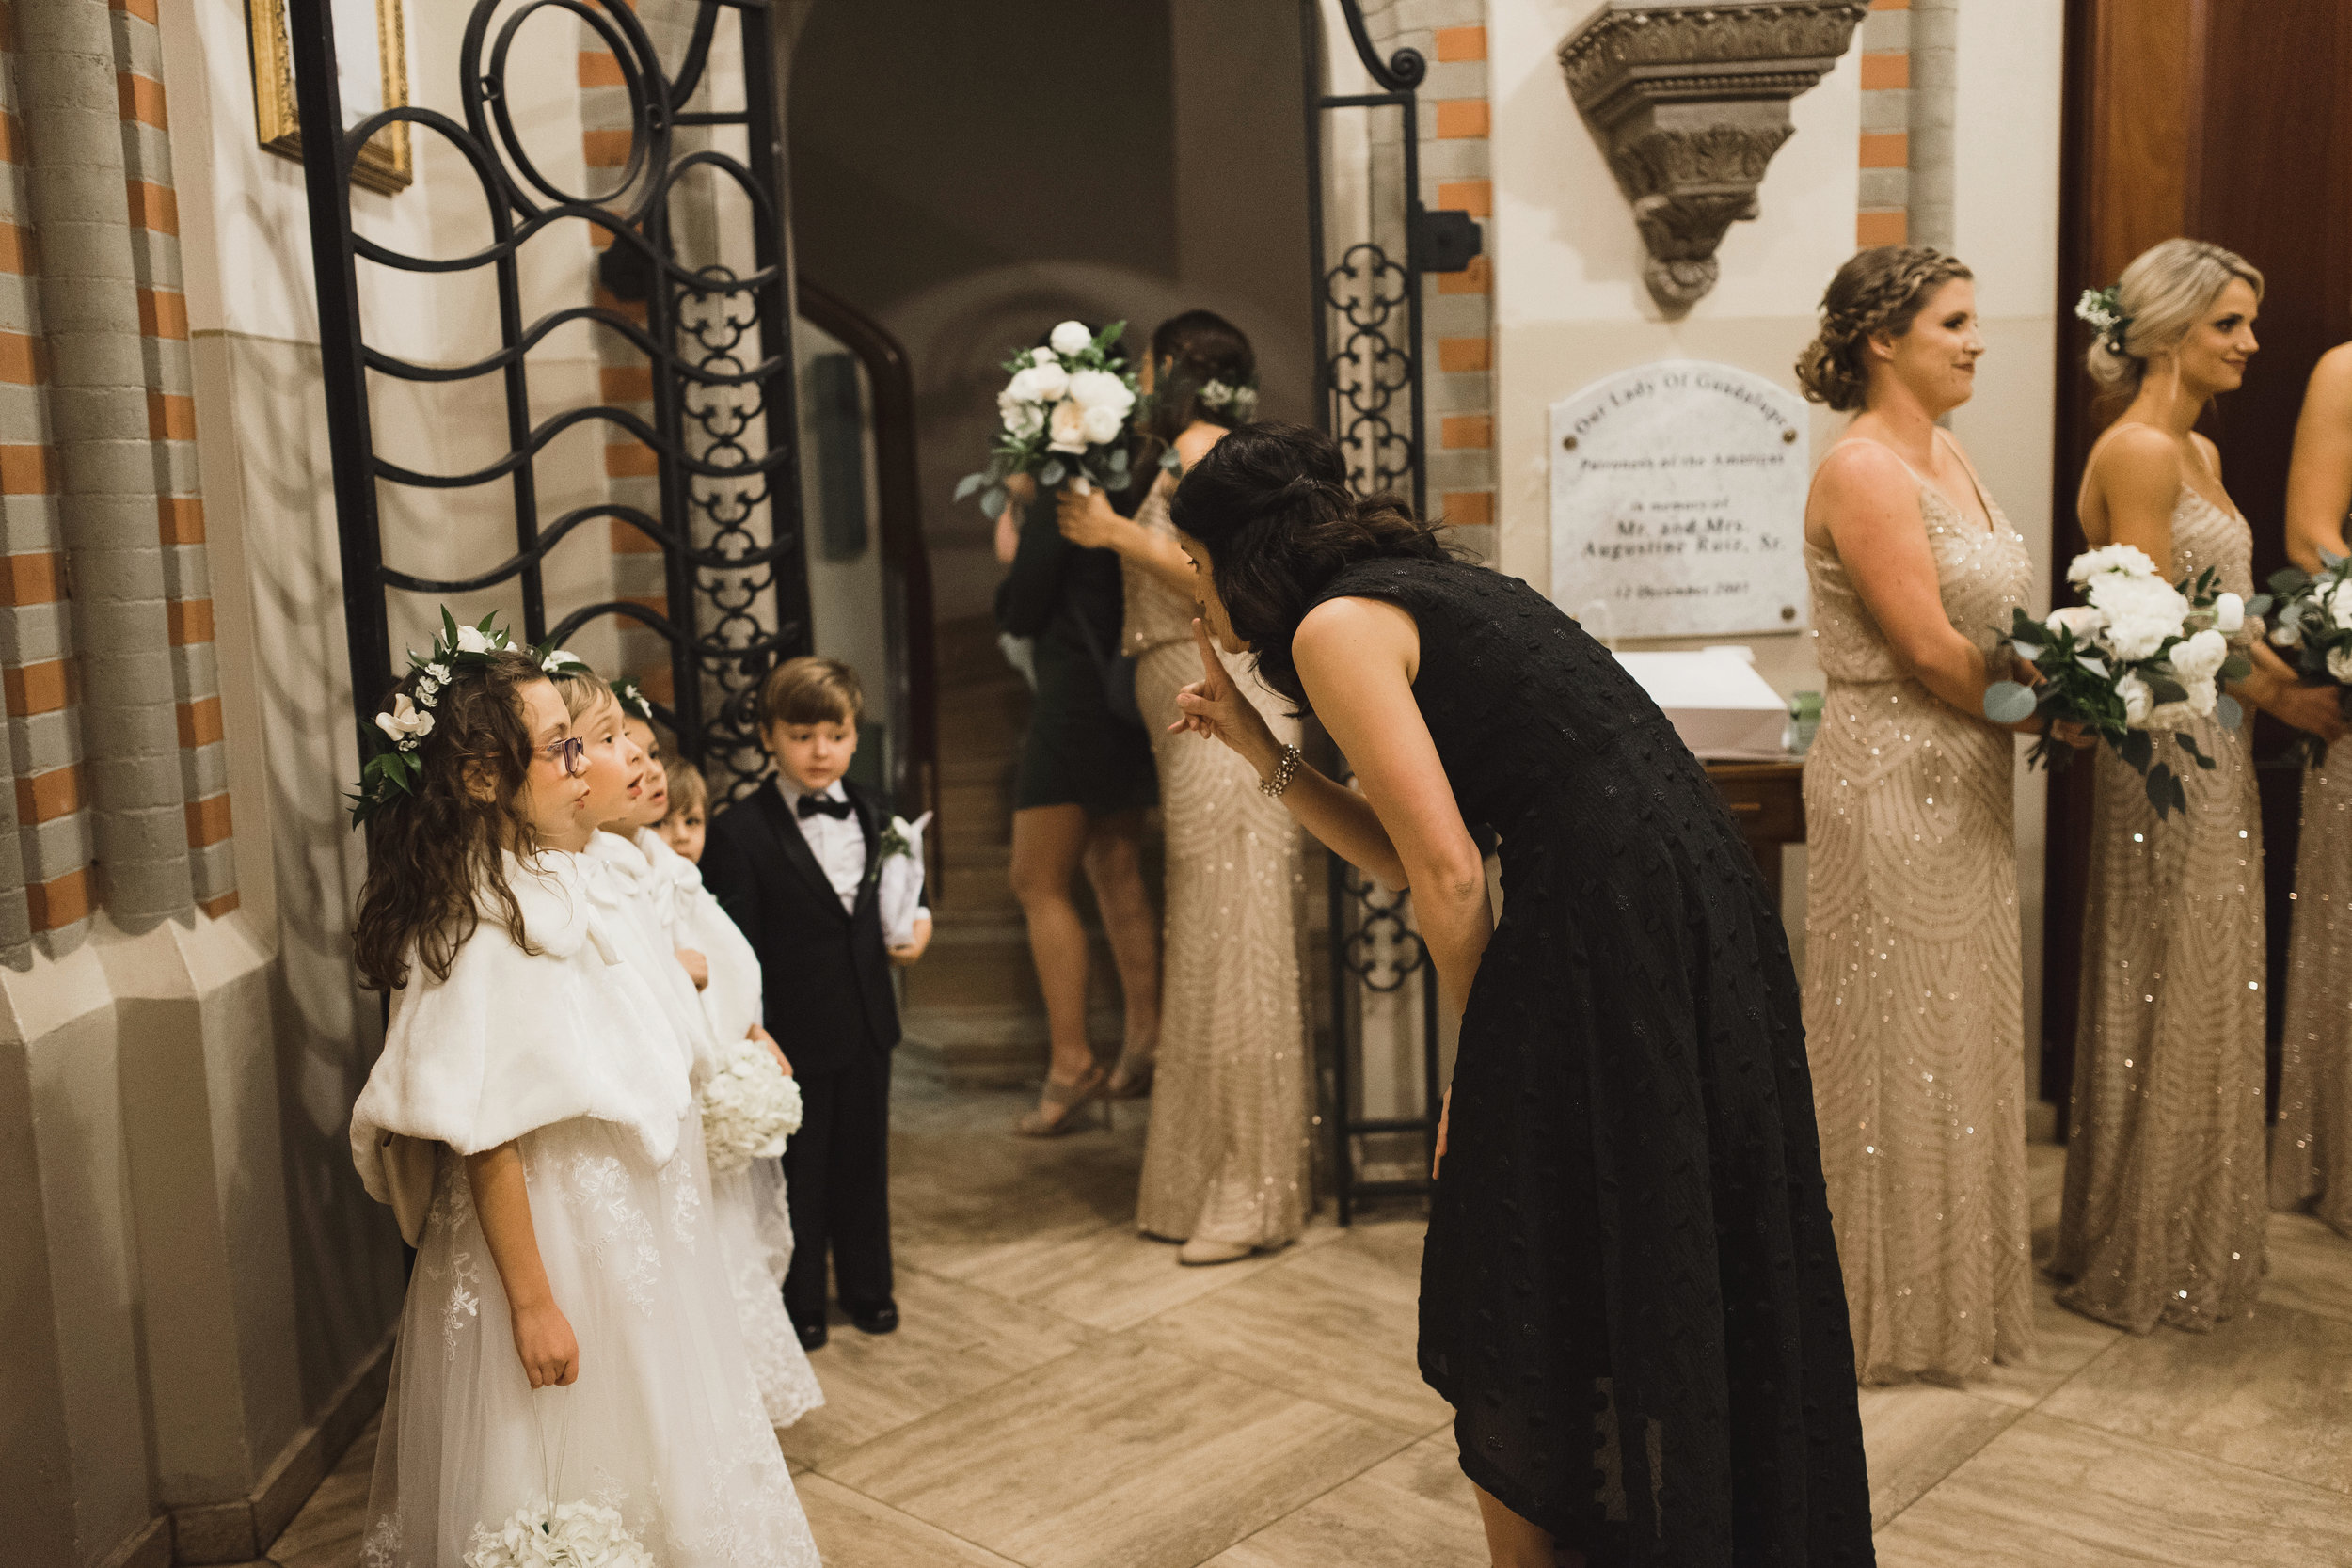 Southern Fete, Southern Wedding, Ceremony, Kimbrali Photography, Cathedral of St. John the Evangelist